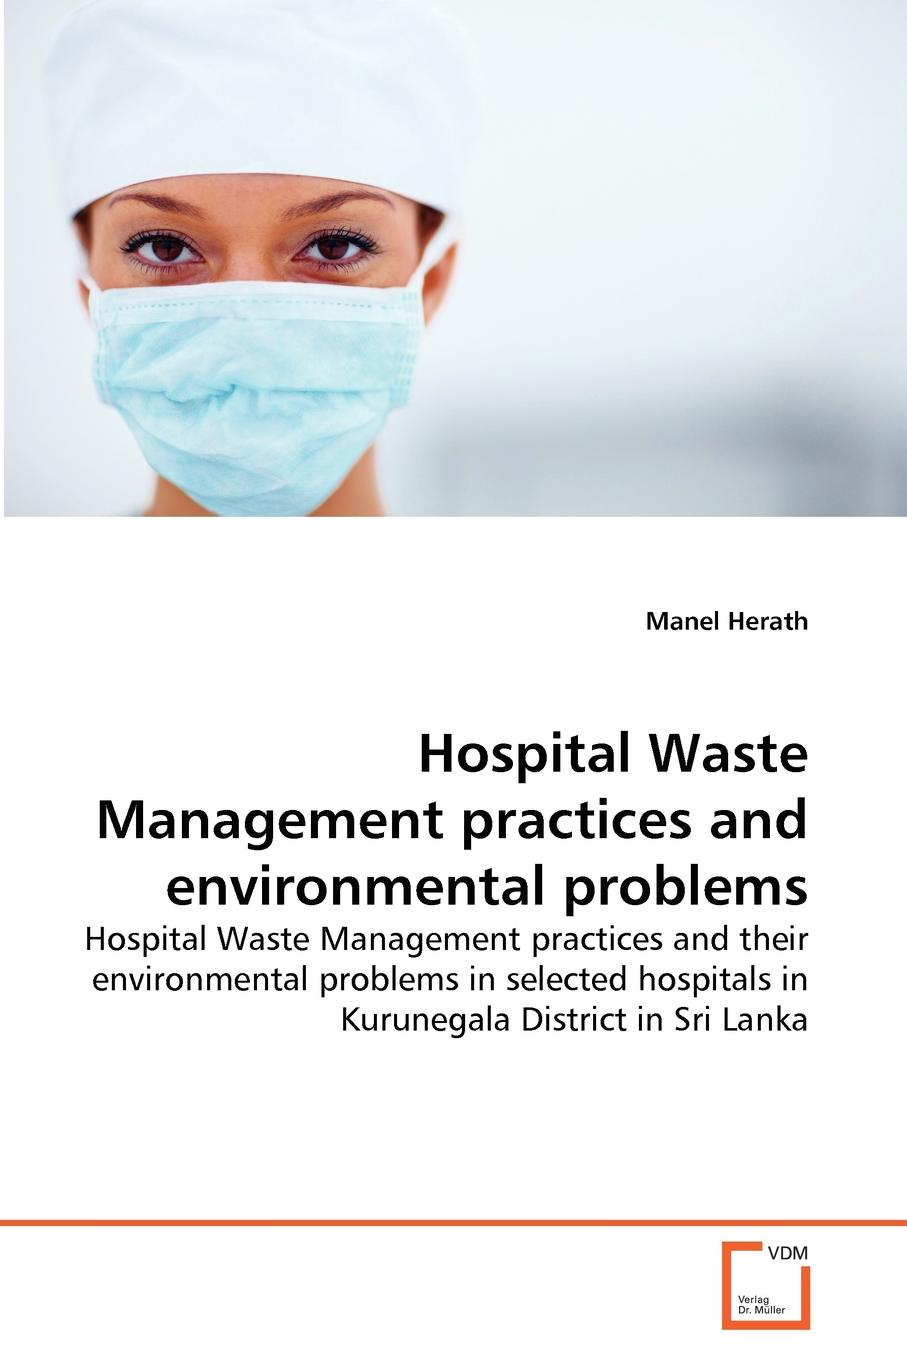 Manel Herath Hospital Waste Management practices and environmental problems joseph ofungwu statistical applications for environmental analysis and risk assessment